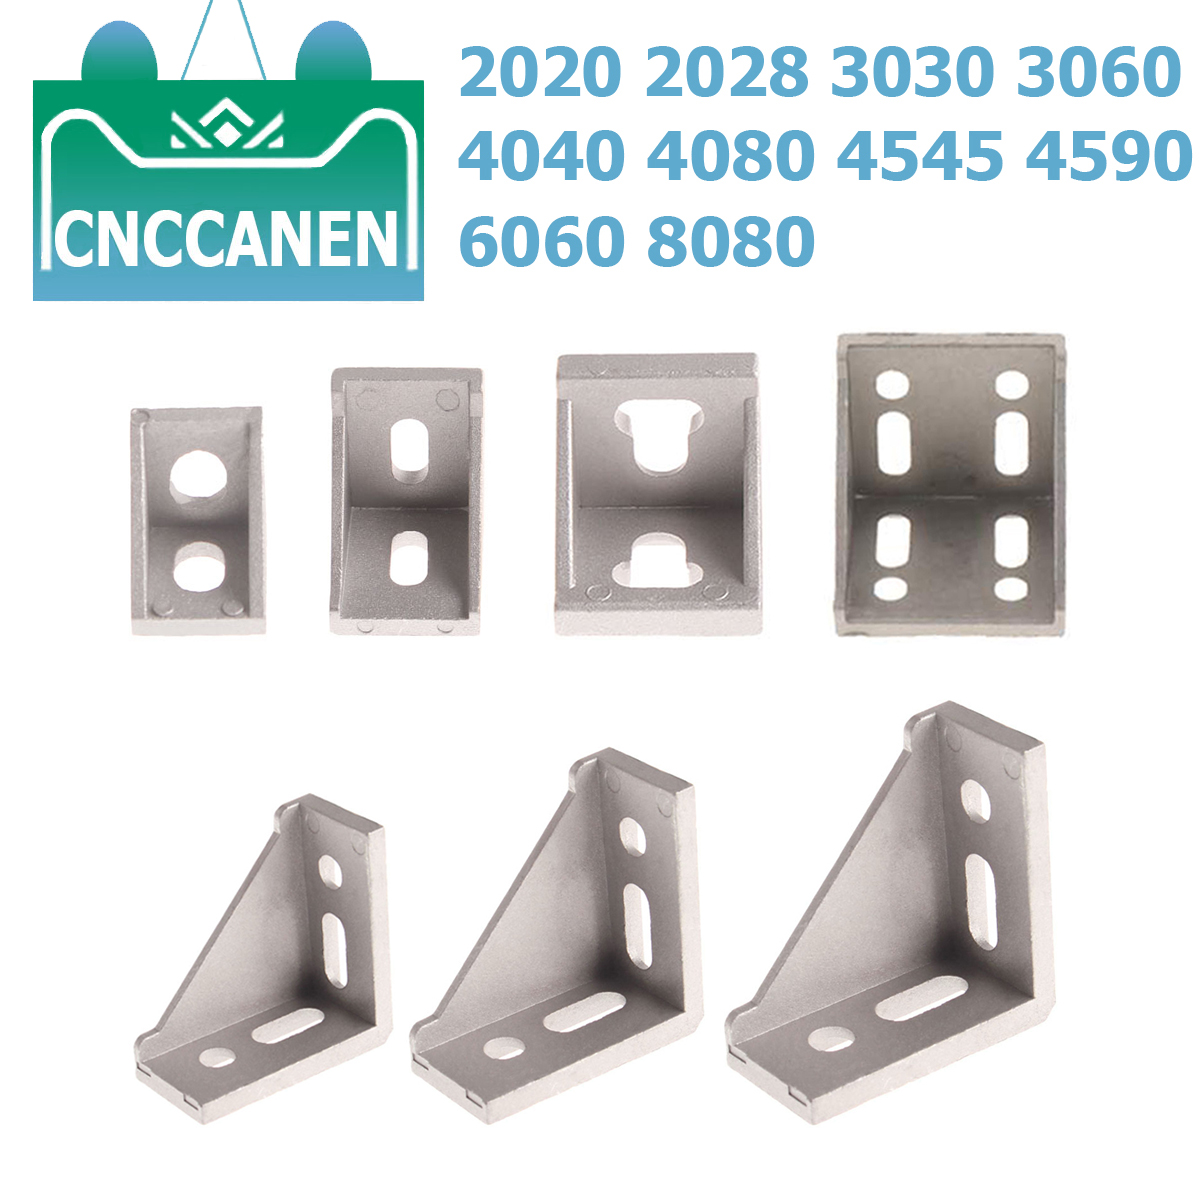 2/5PCS 2020 2028 3030 4040 Corner Bracket Fitting Angle L Connector Bracket Fastener For Aluminium Profile CNC 4545 6060 8080